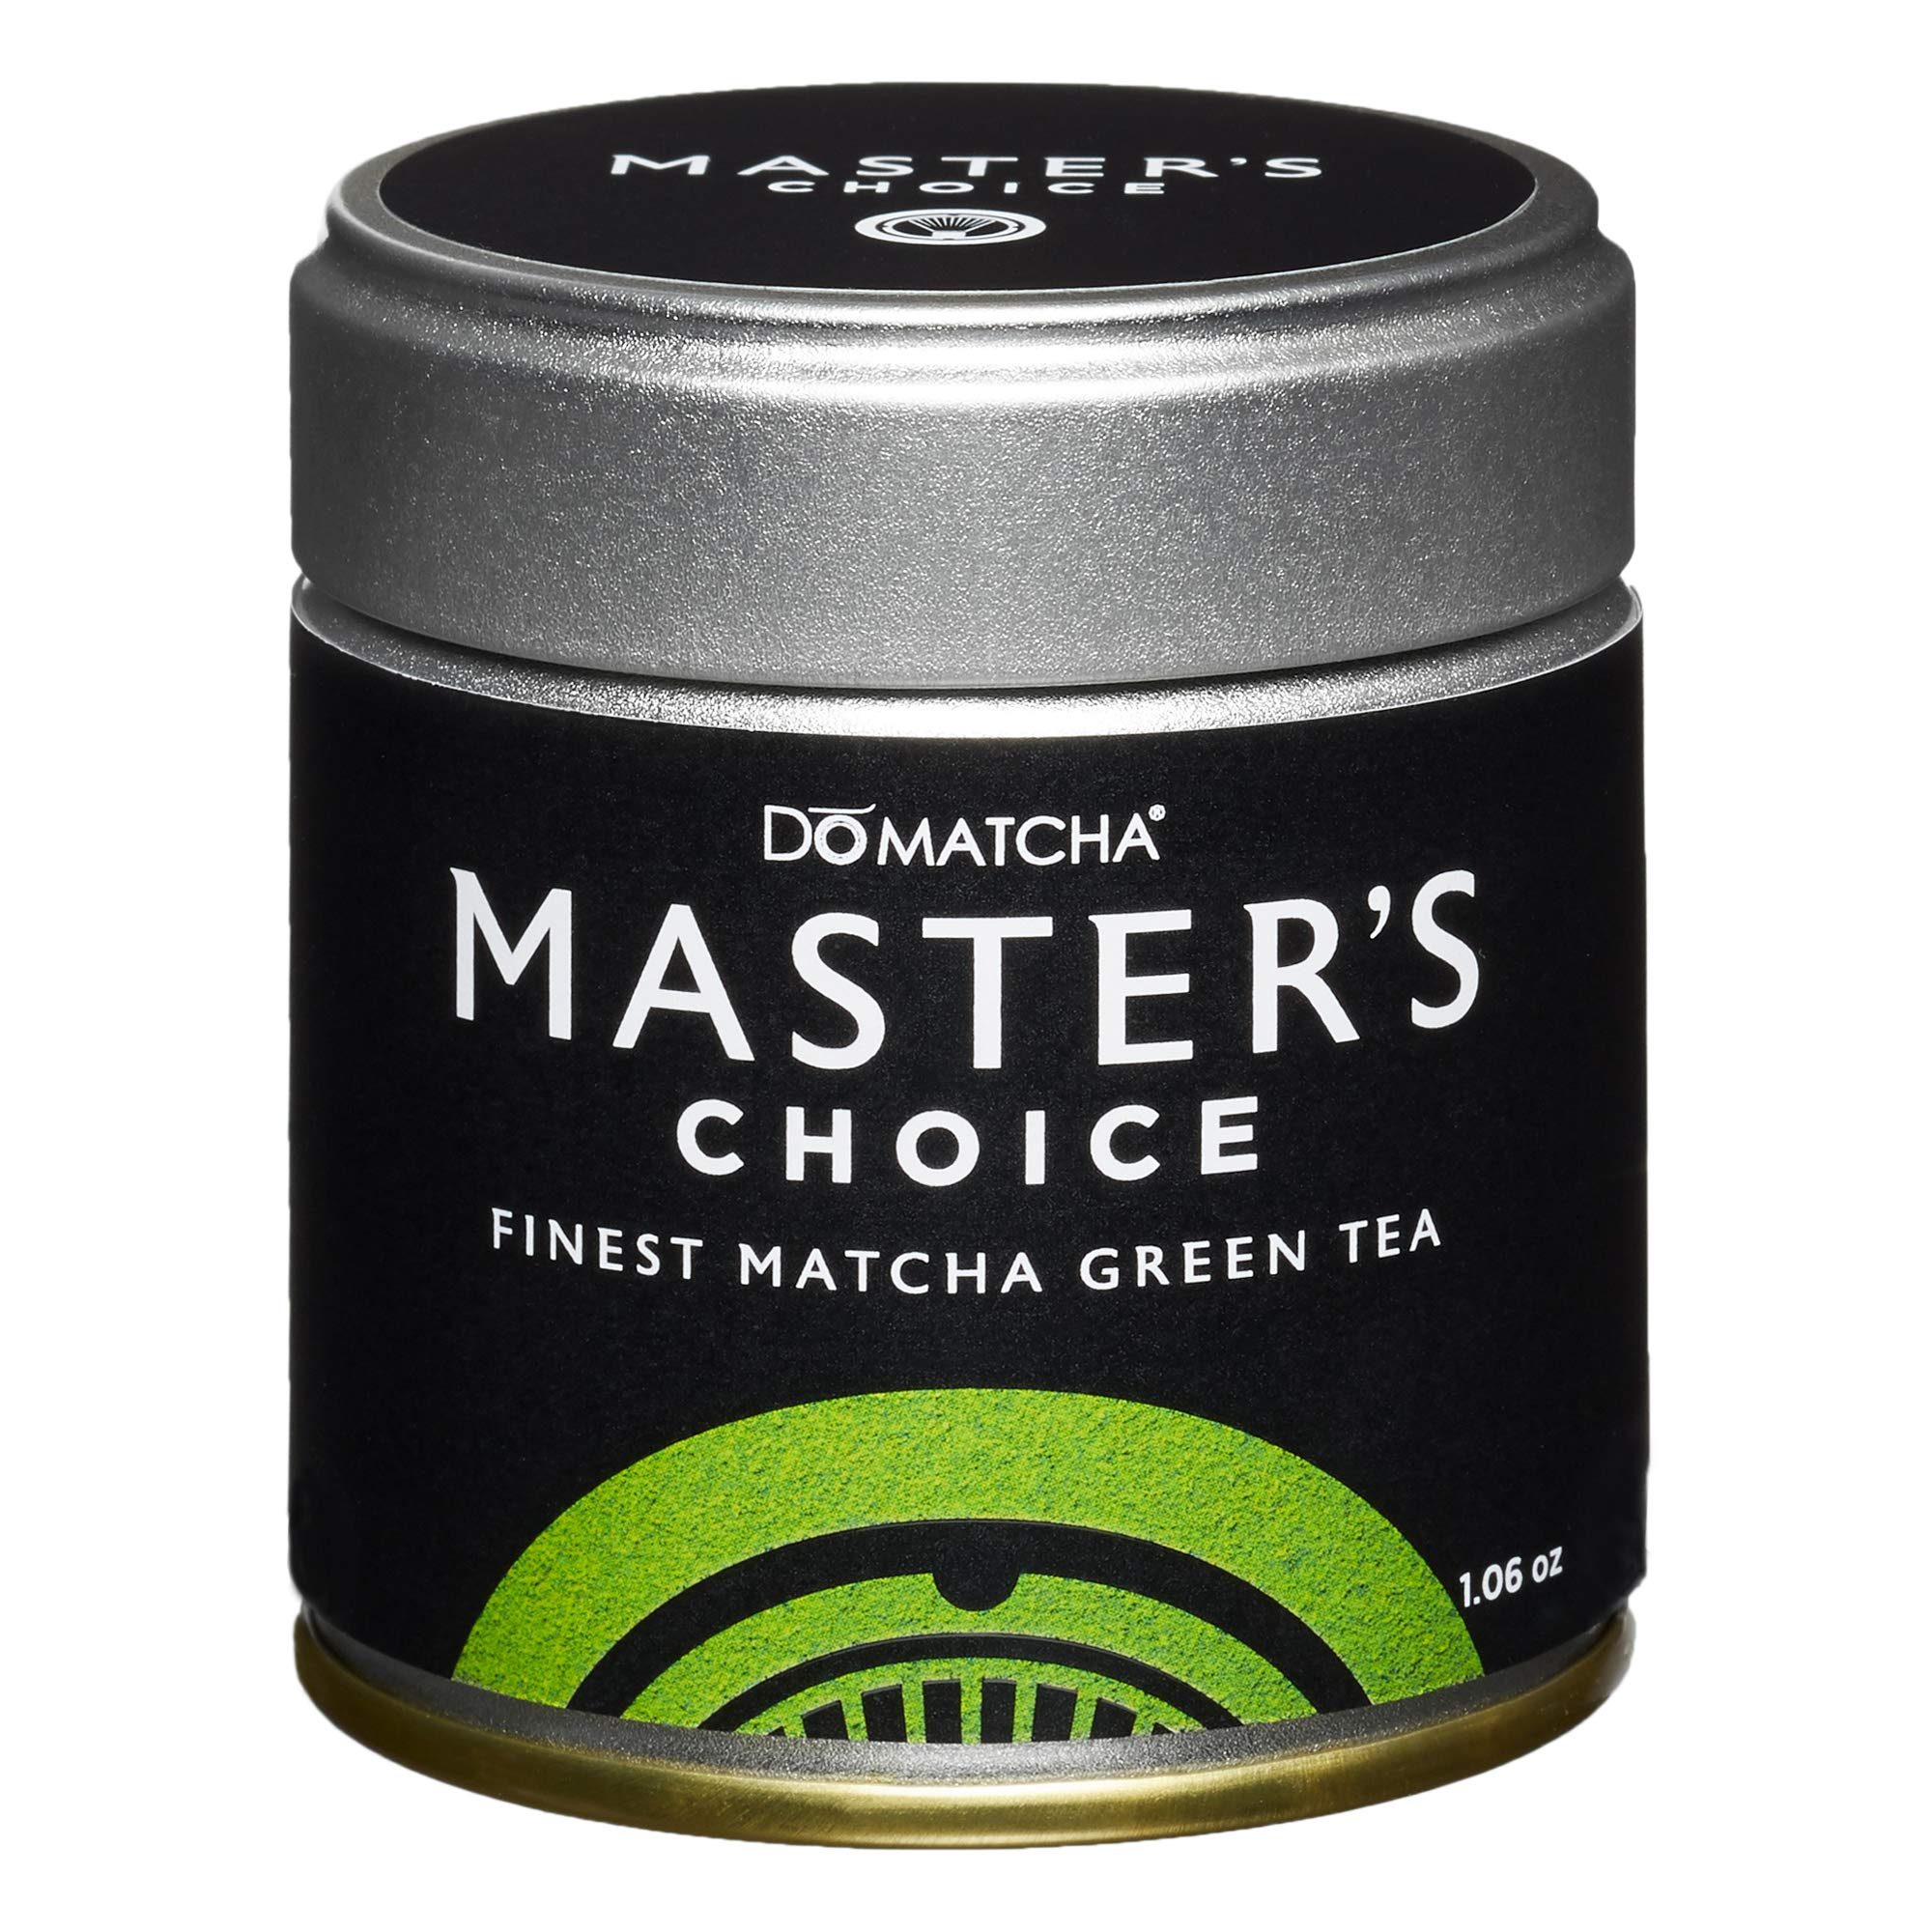 DoMatcha - Master's Choice Green Tea Matcha Powder, Natural Source of Antioxidants, Caffeine, and L-Theanine, Promotes Focus and Relaxation, 25 Servings (1 oz)